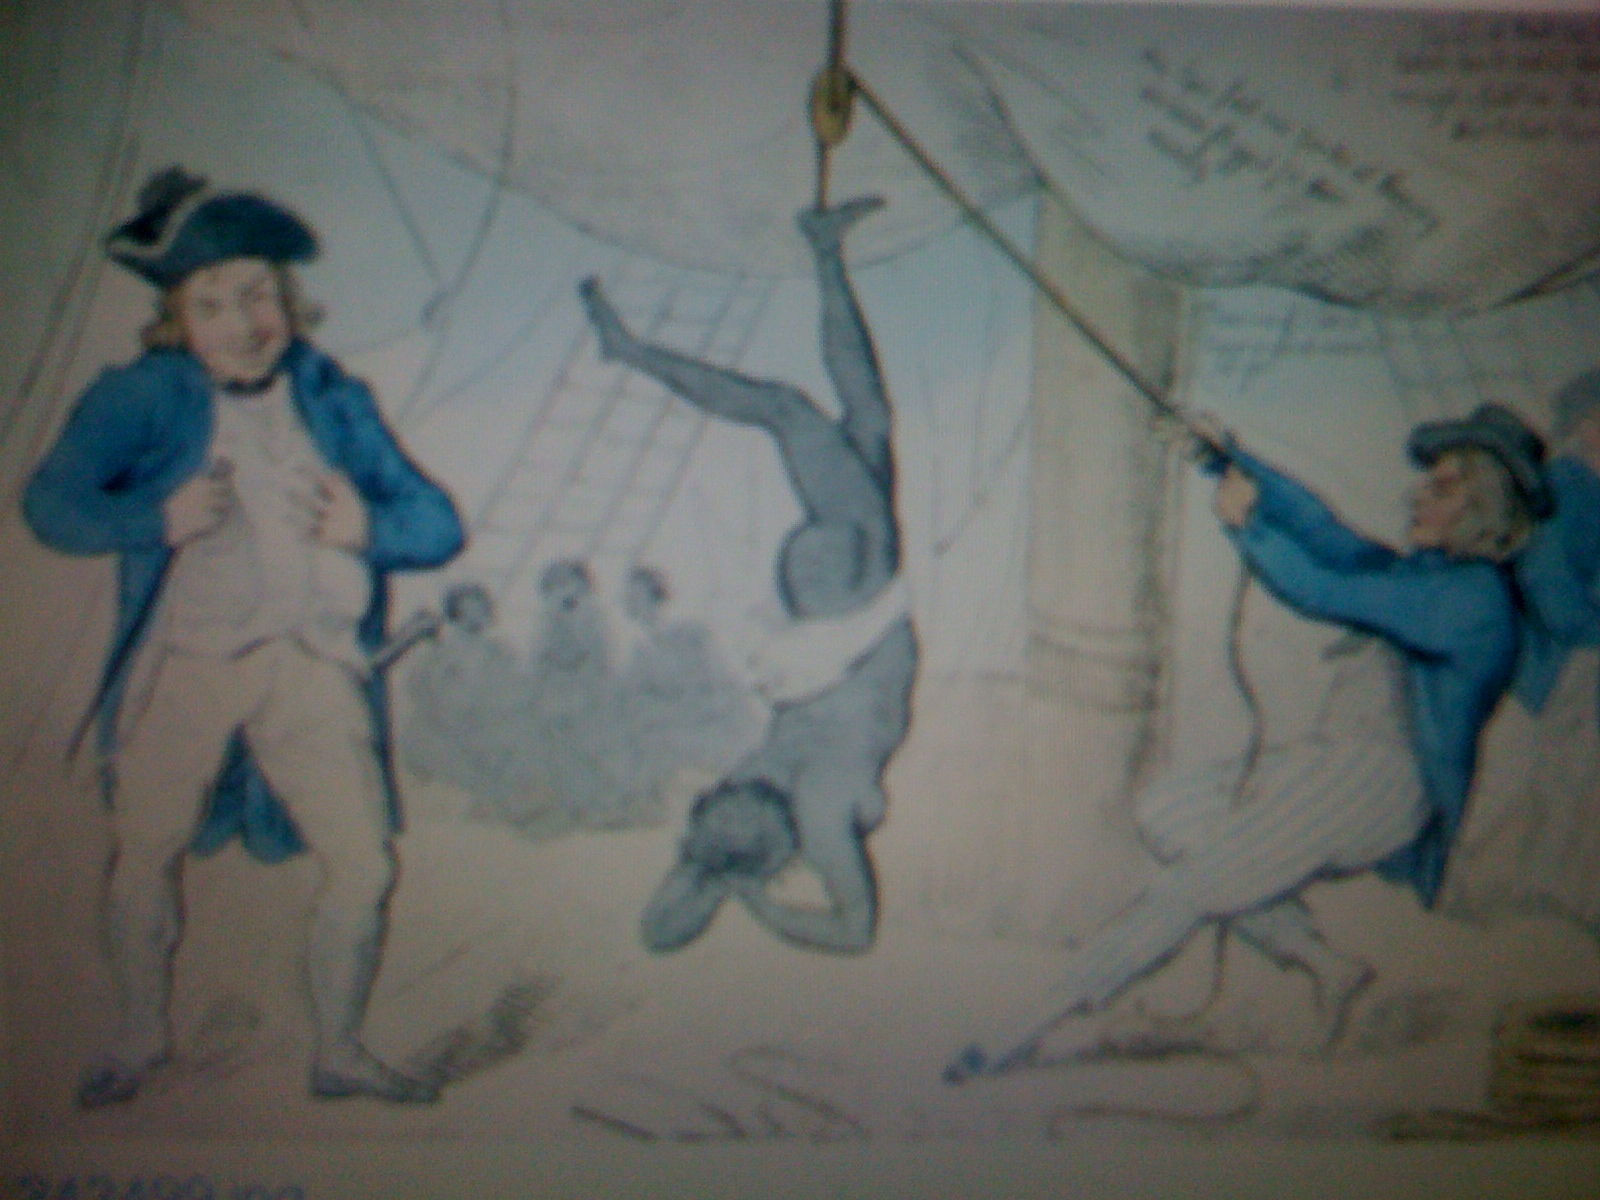 the slave trade in portugal history essay The history of cape verde is typical and yet unique for its location for three centuries, the islands were a setting for the transatlantic slave trade, exile for political prisoners of portugal and a place of refuge for jews and other victims of religious persecution during the spanish-portuguese inquisition.